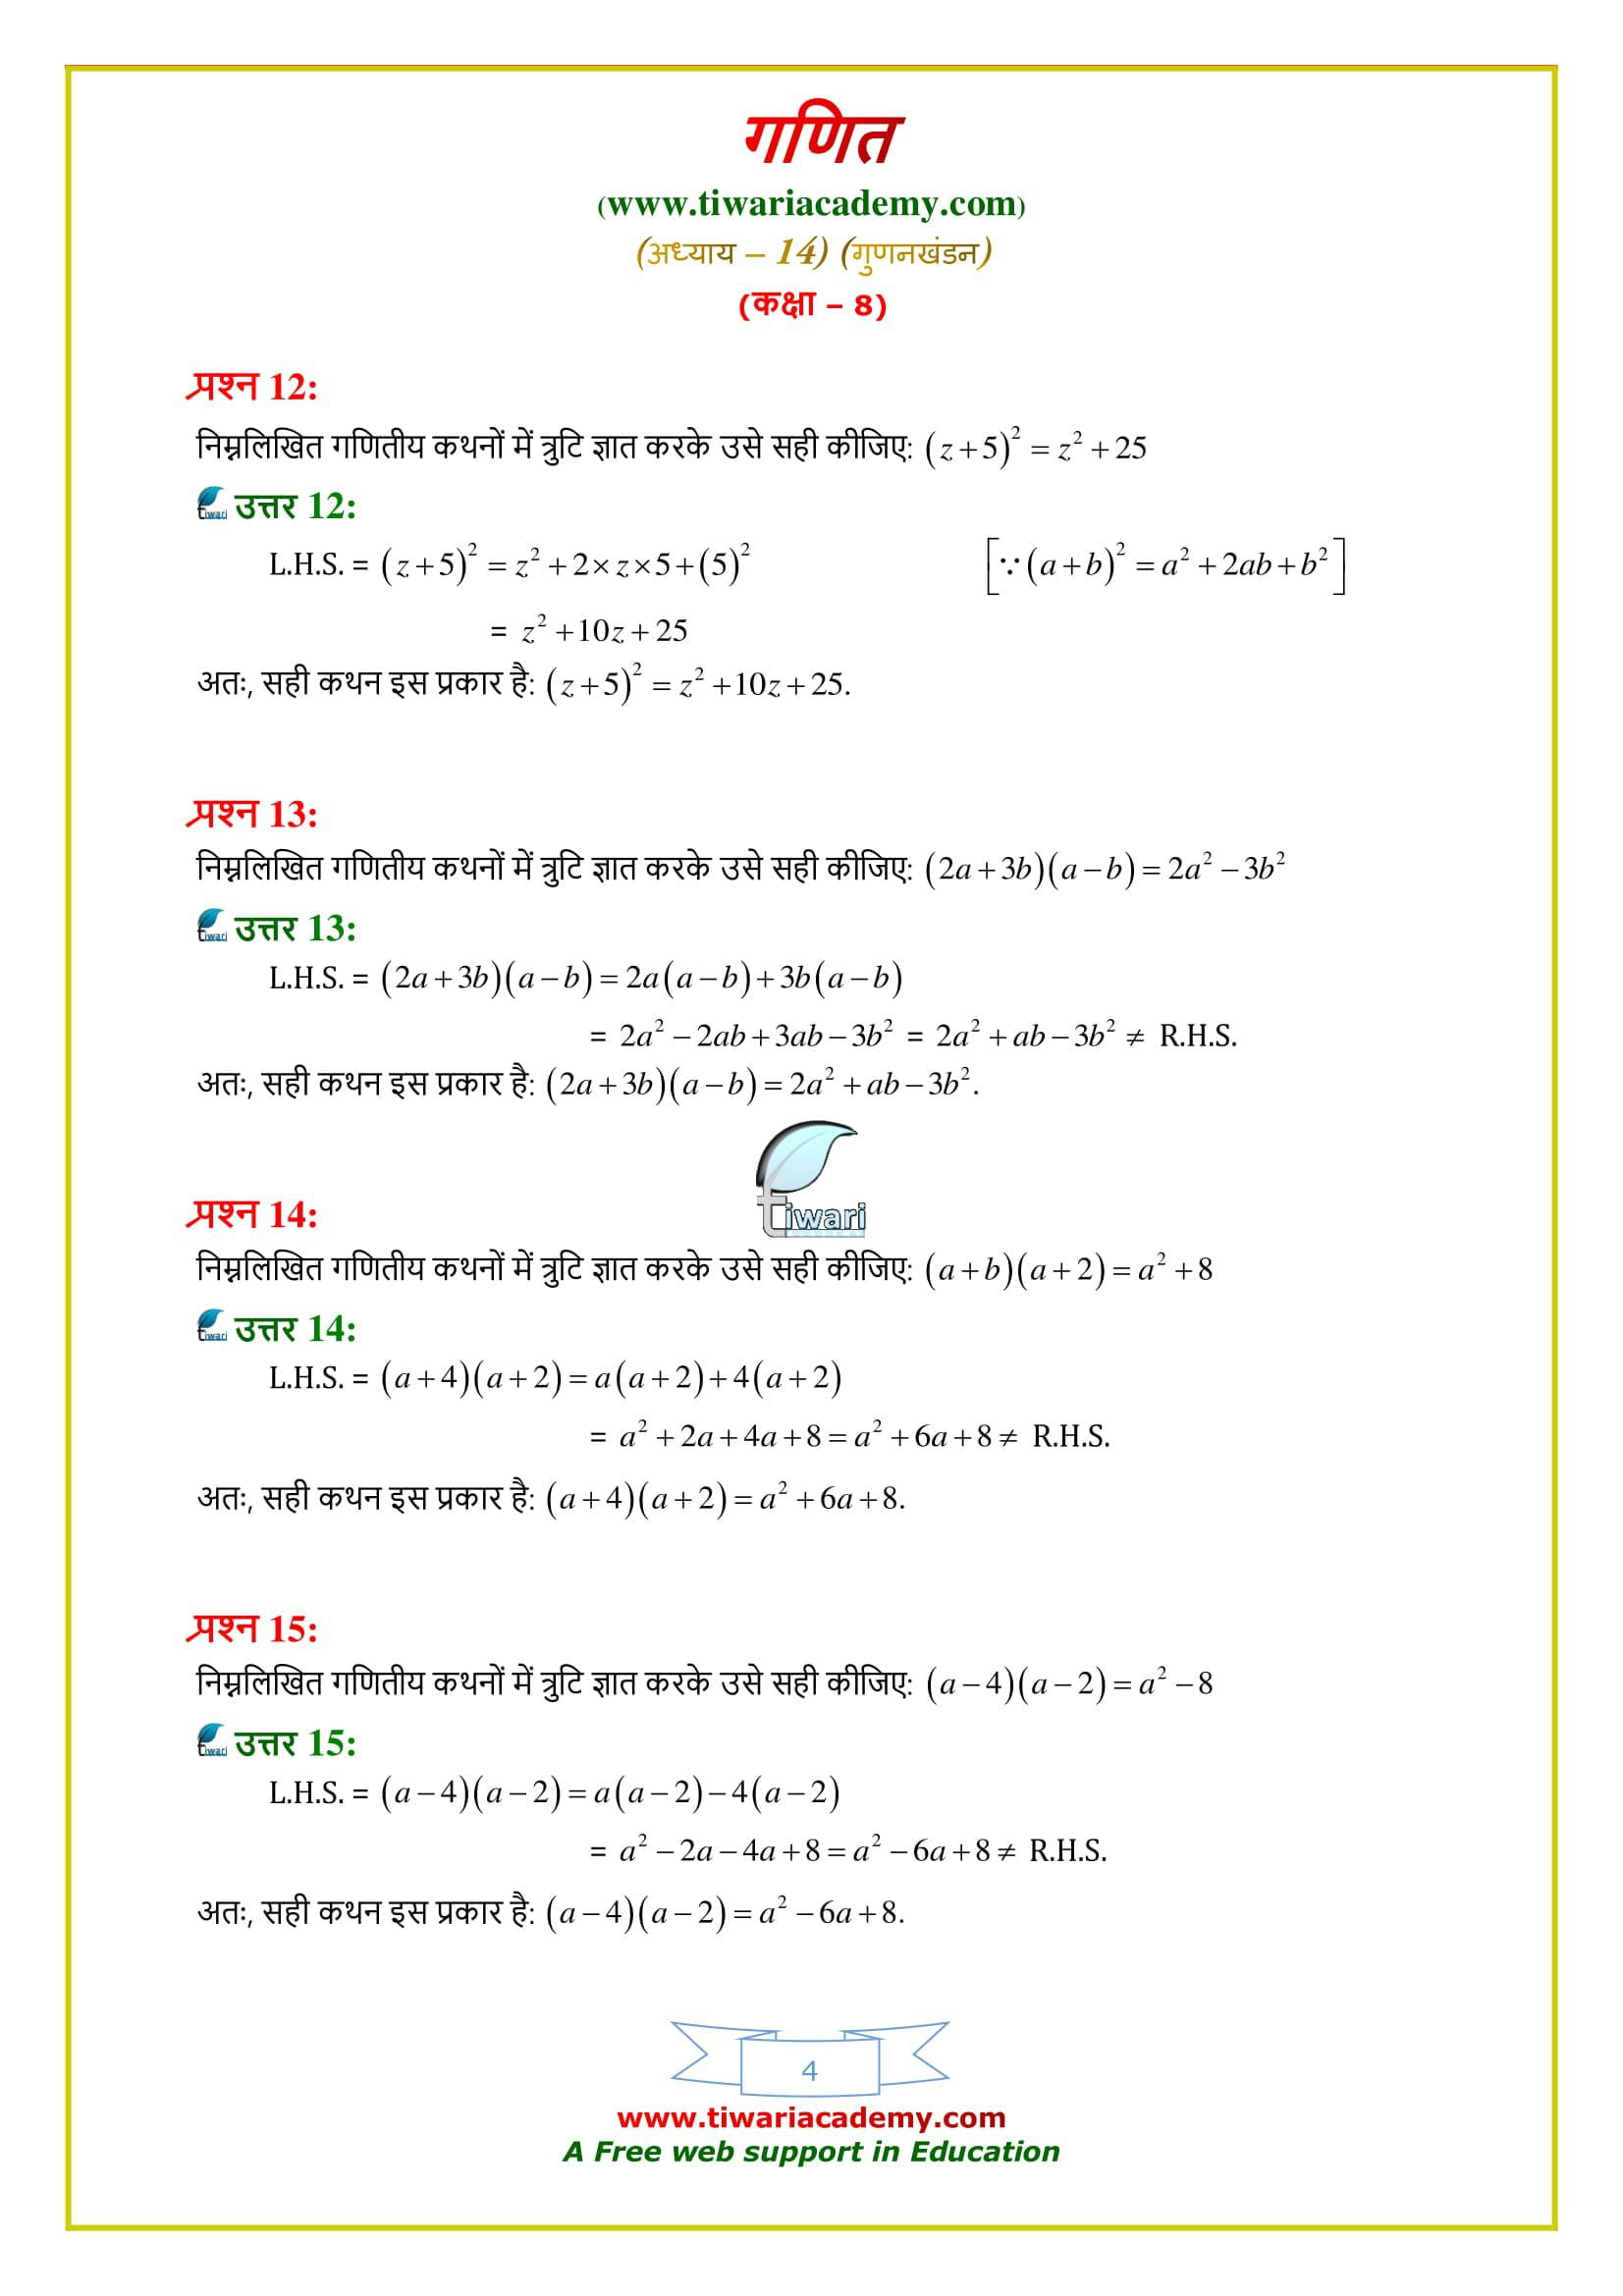 8 Maths exercise 14.4 solutions free to download